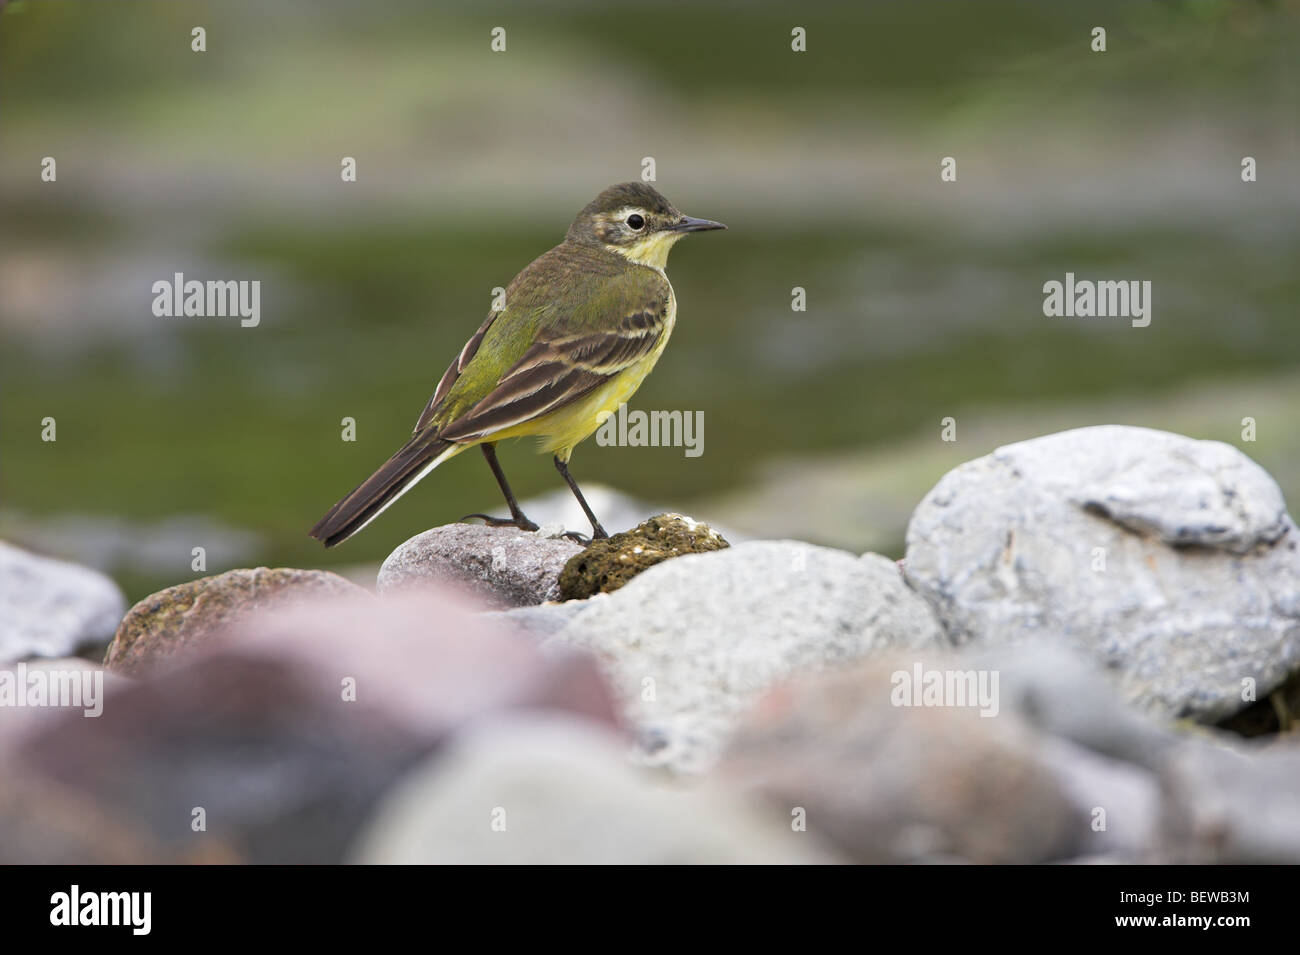 Black-headed Wagtail (Motacilla flava feldegg) sitting on waterside stone, side view - Stock Image